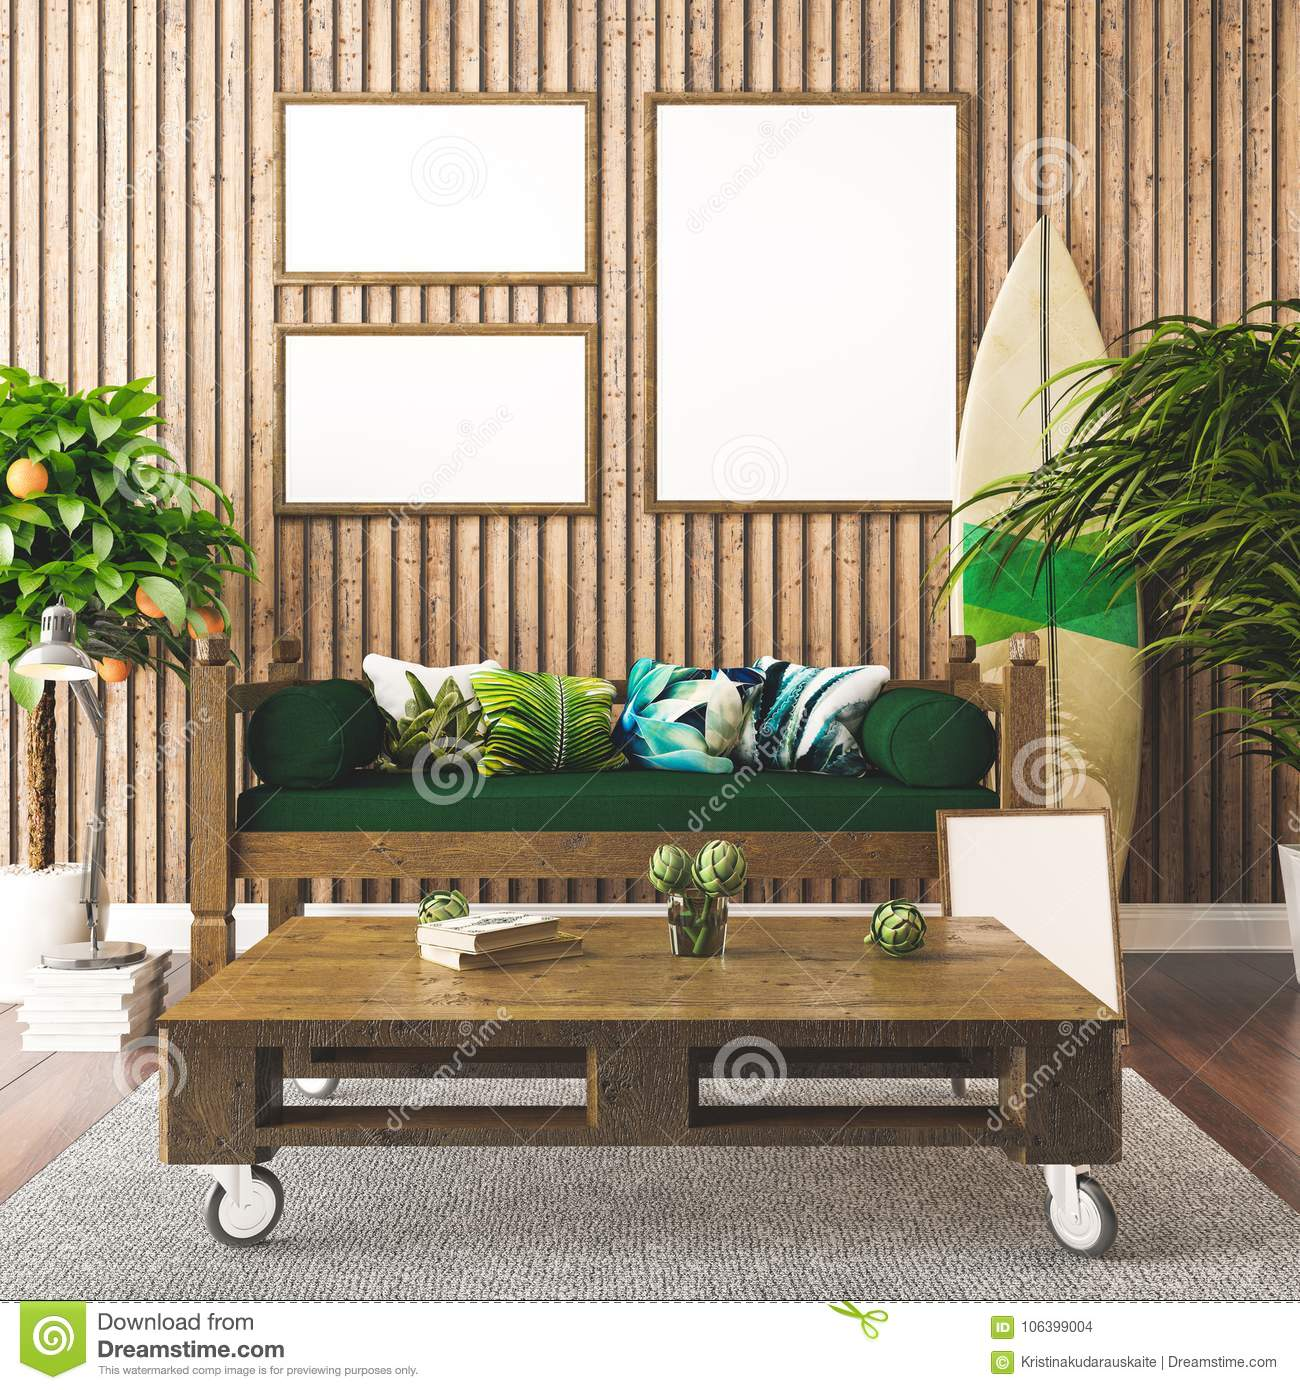 Interior poster mockup tropical interior hawaiian style 3d render